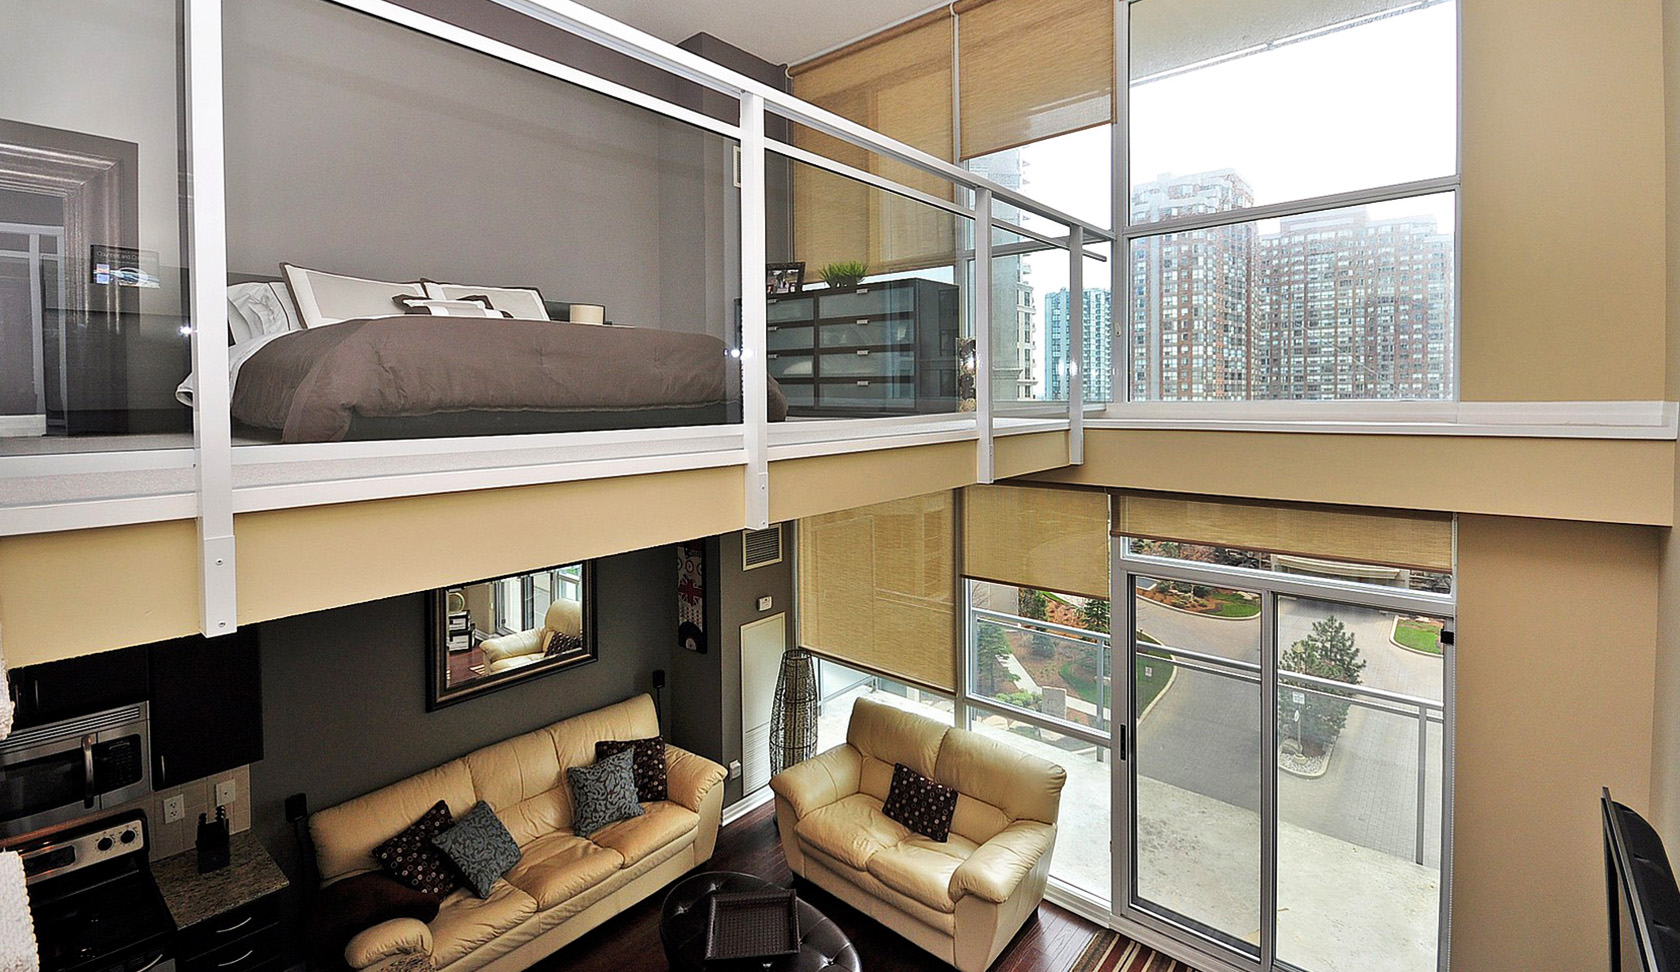 mississauga lofts Mississauga Lofts 225 webb dr luxury loft